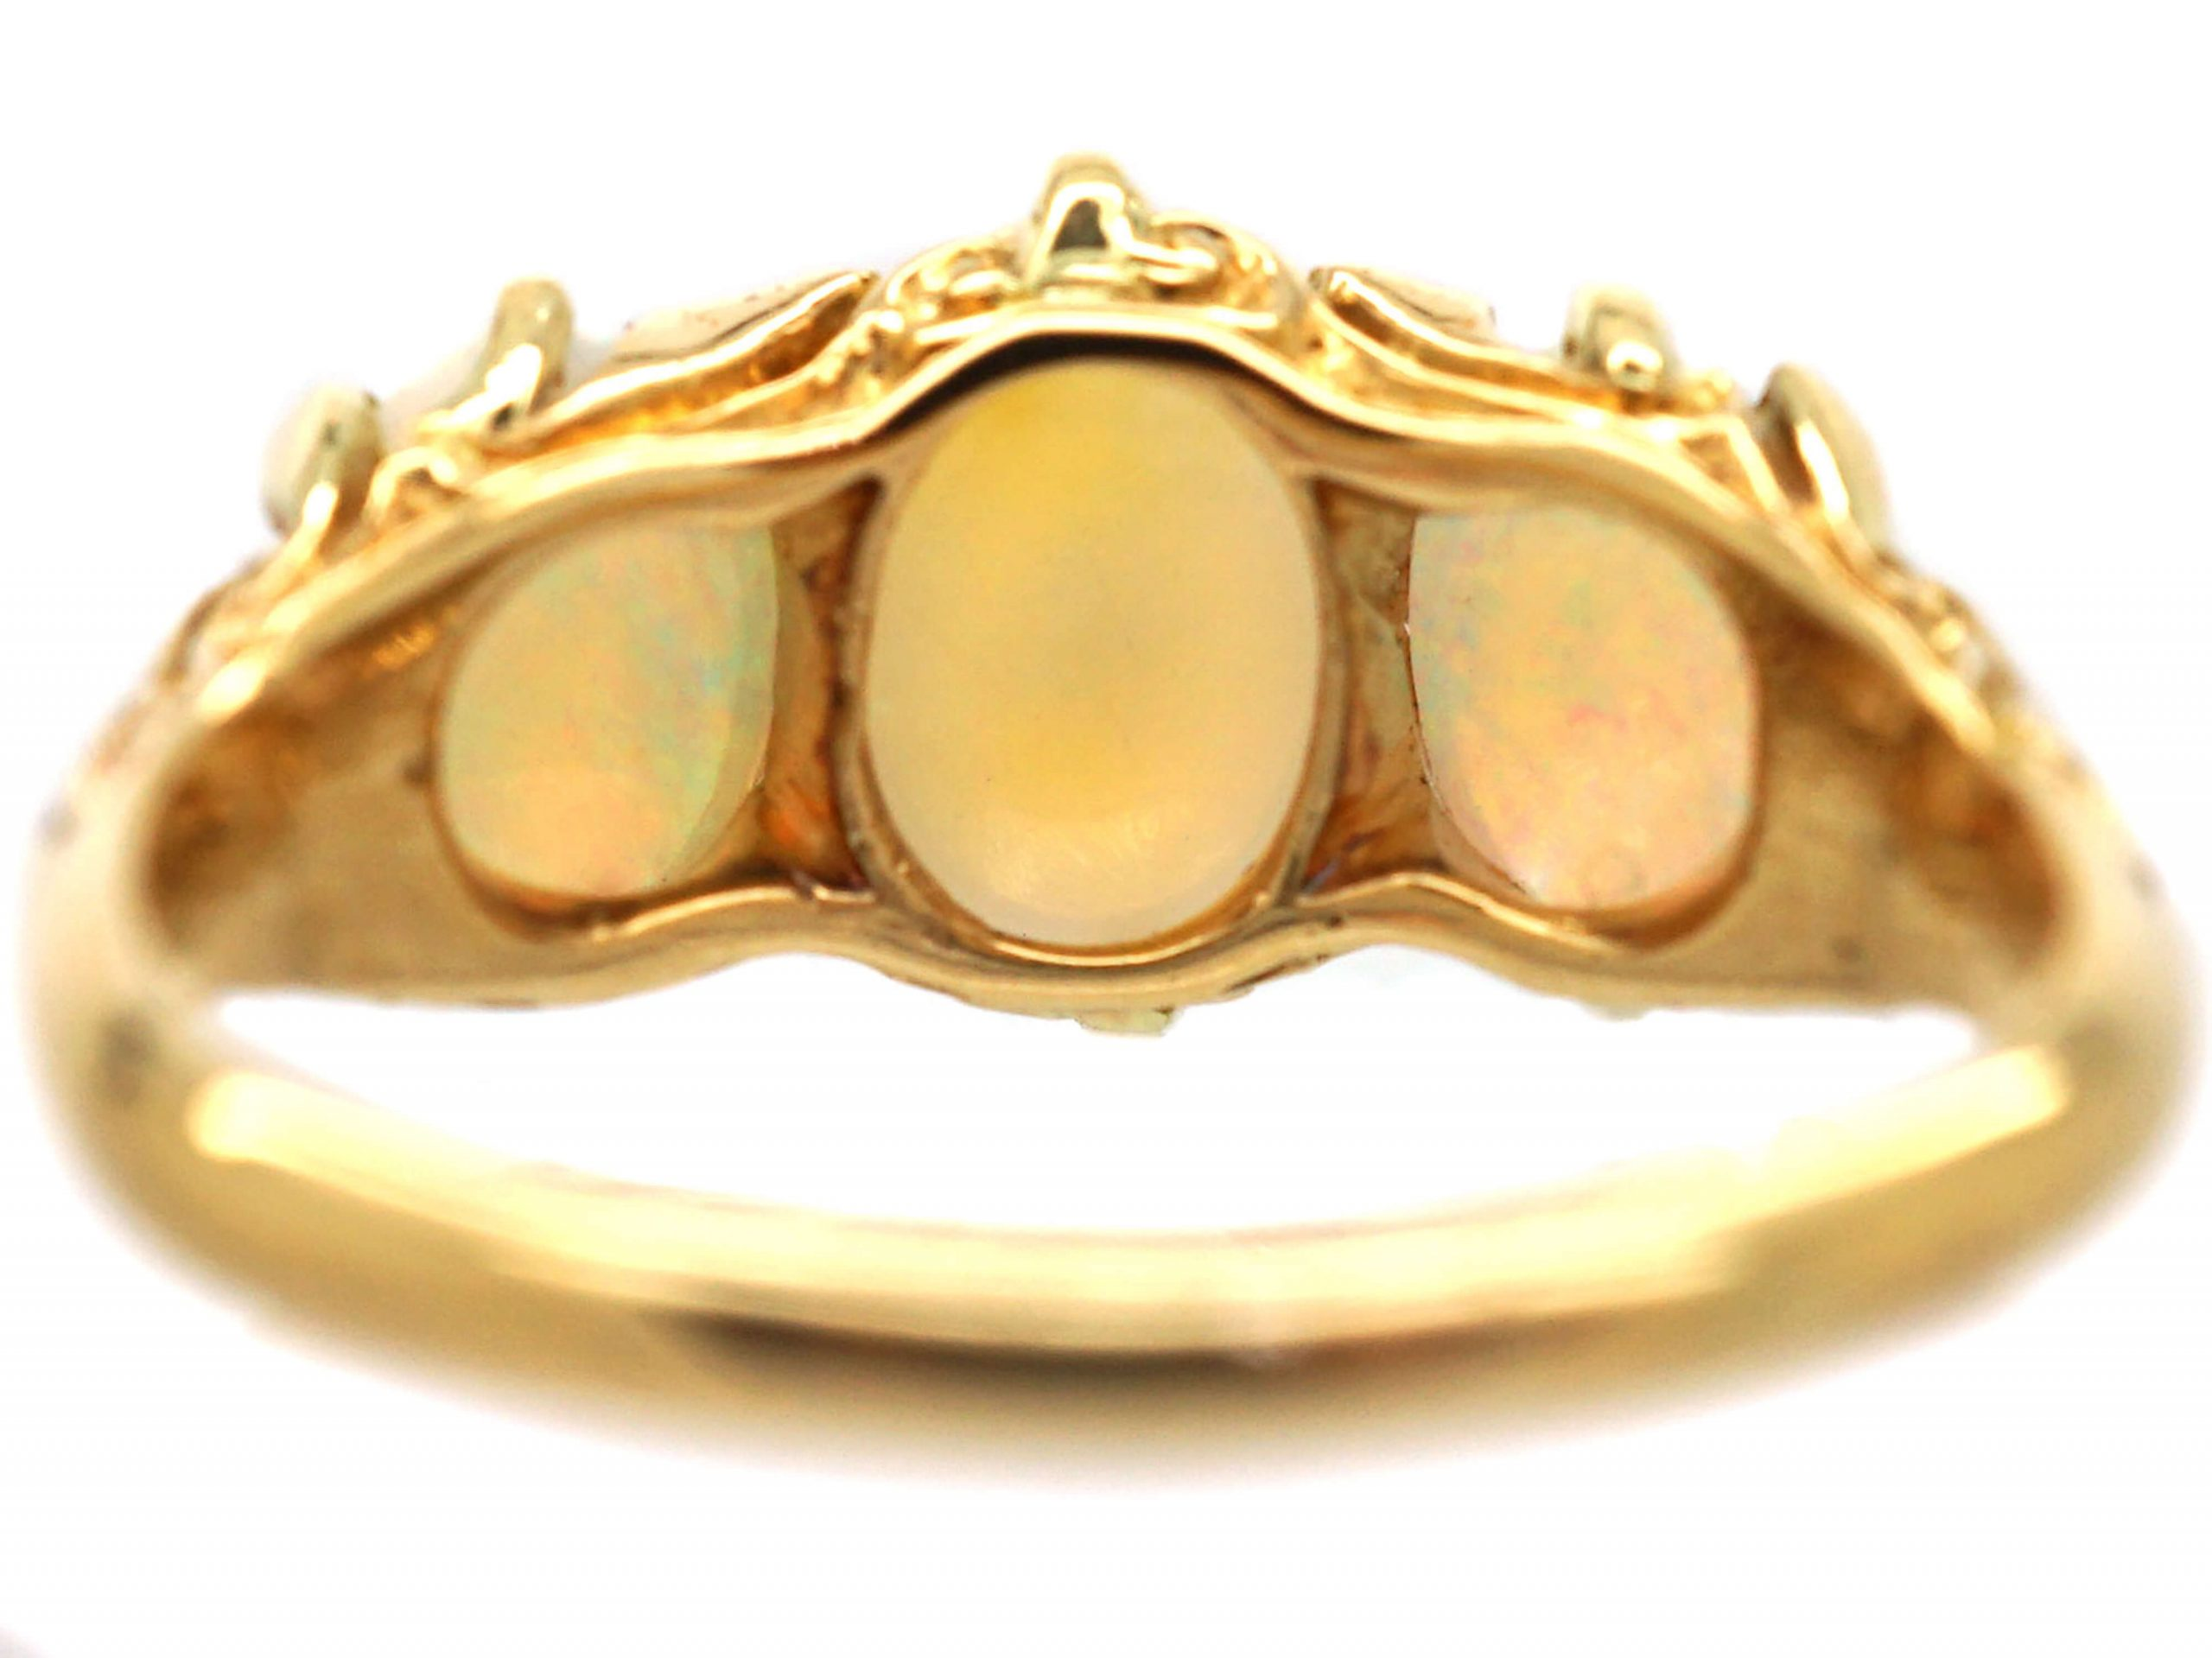 Edwardian 18ct Gold, Three Stone Opal Ring with Rose Diamond Points